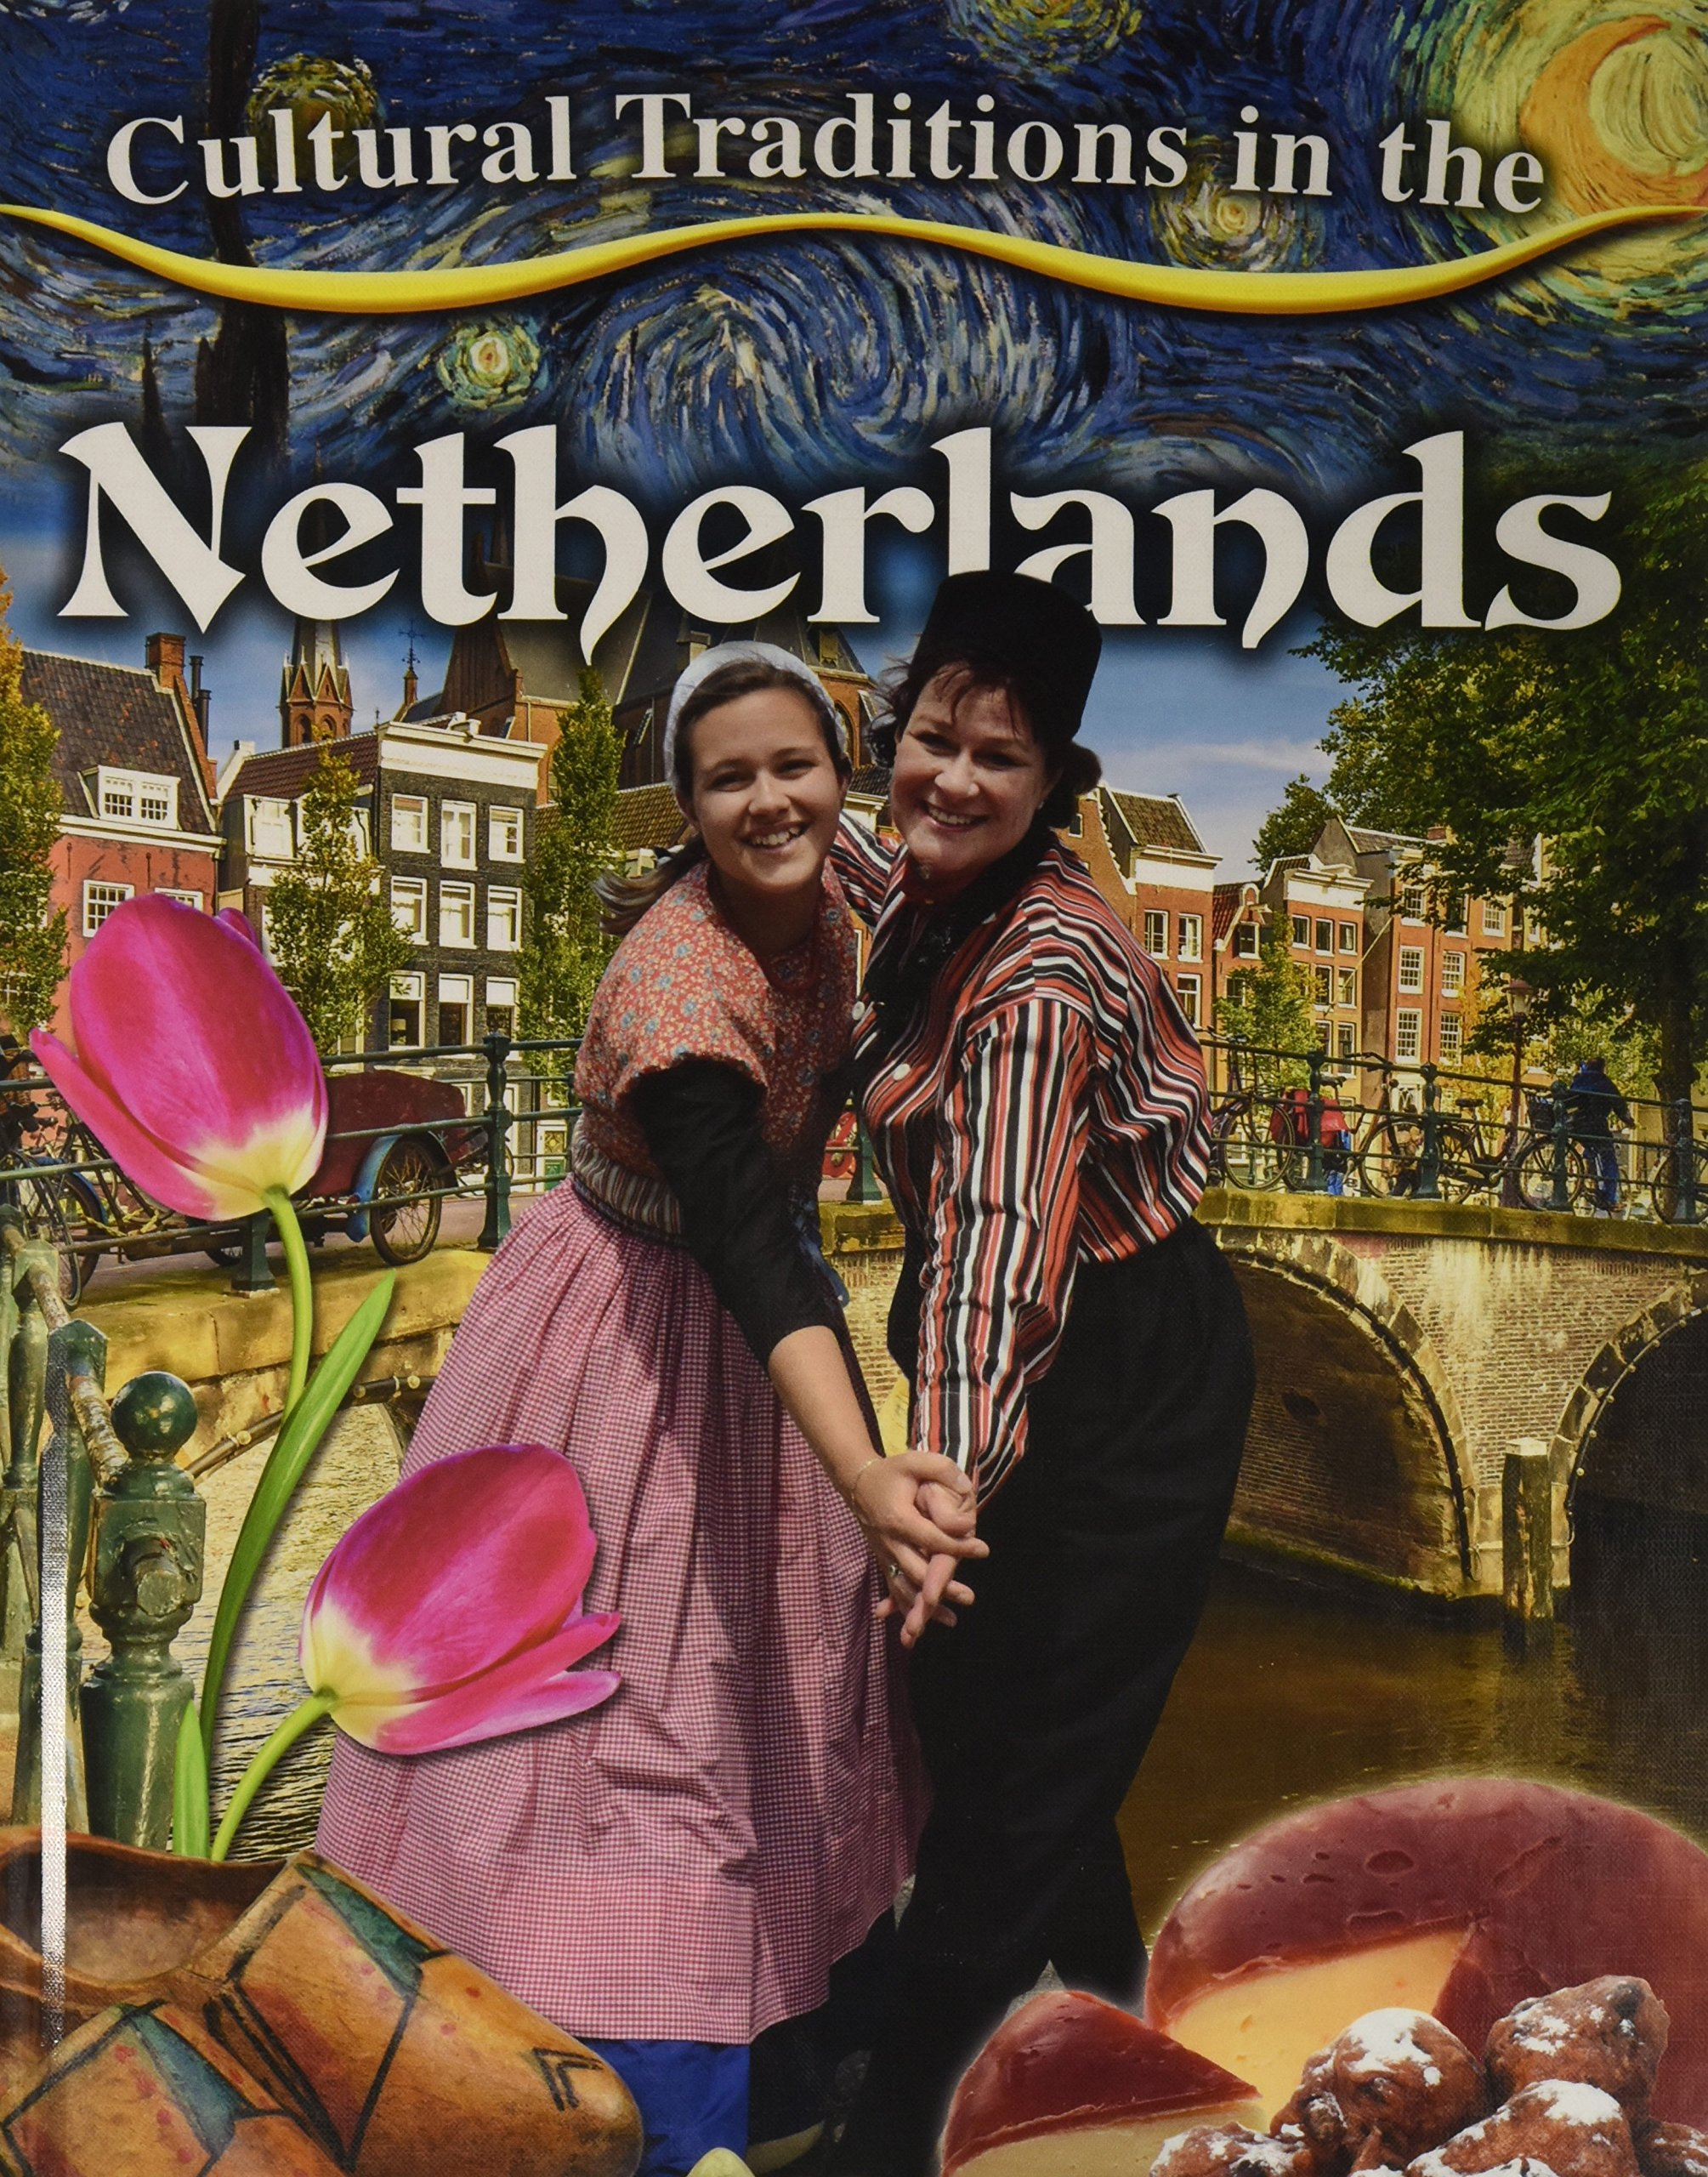 Cultural Traditions in the Netherlands (Cultural Traditions